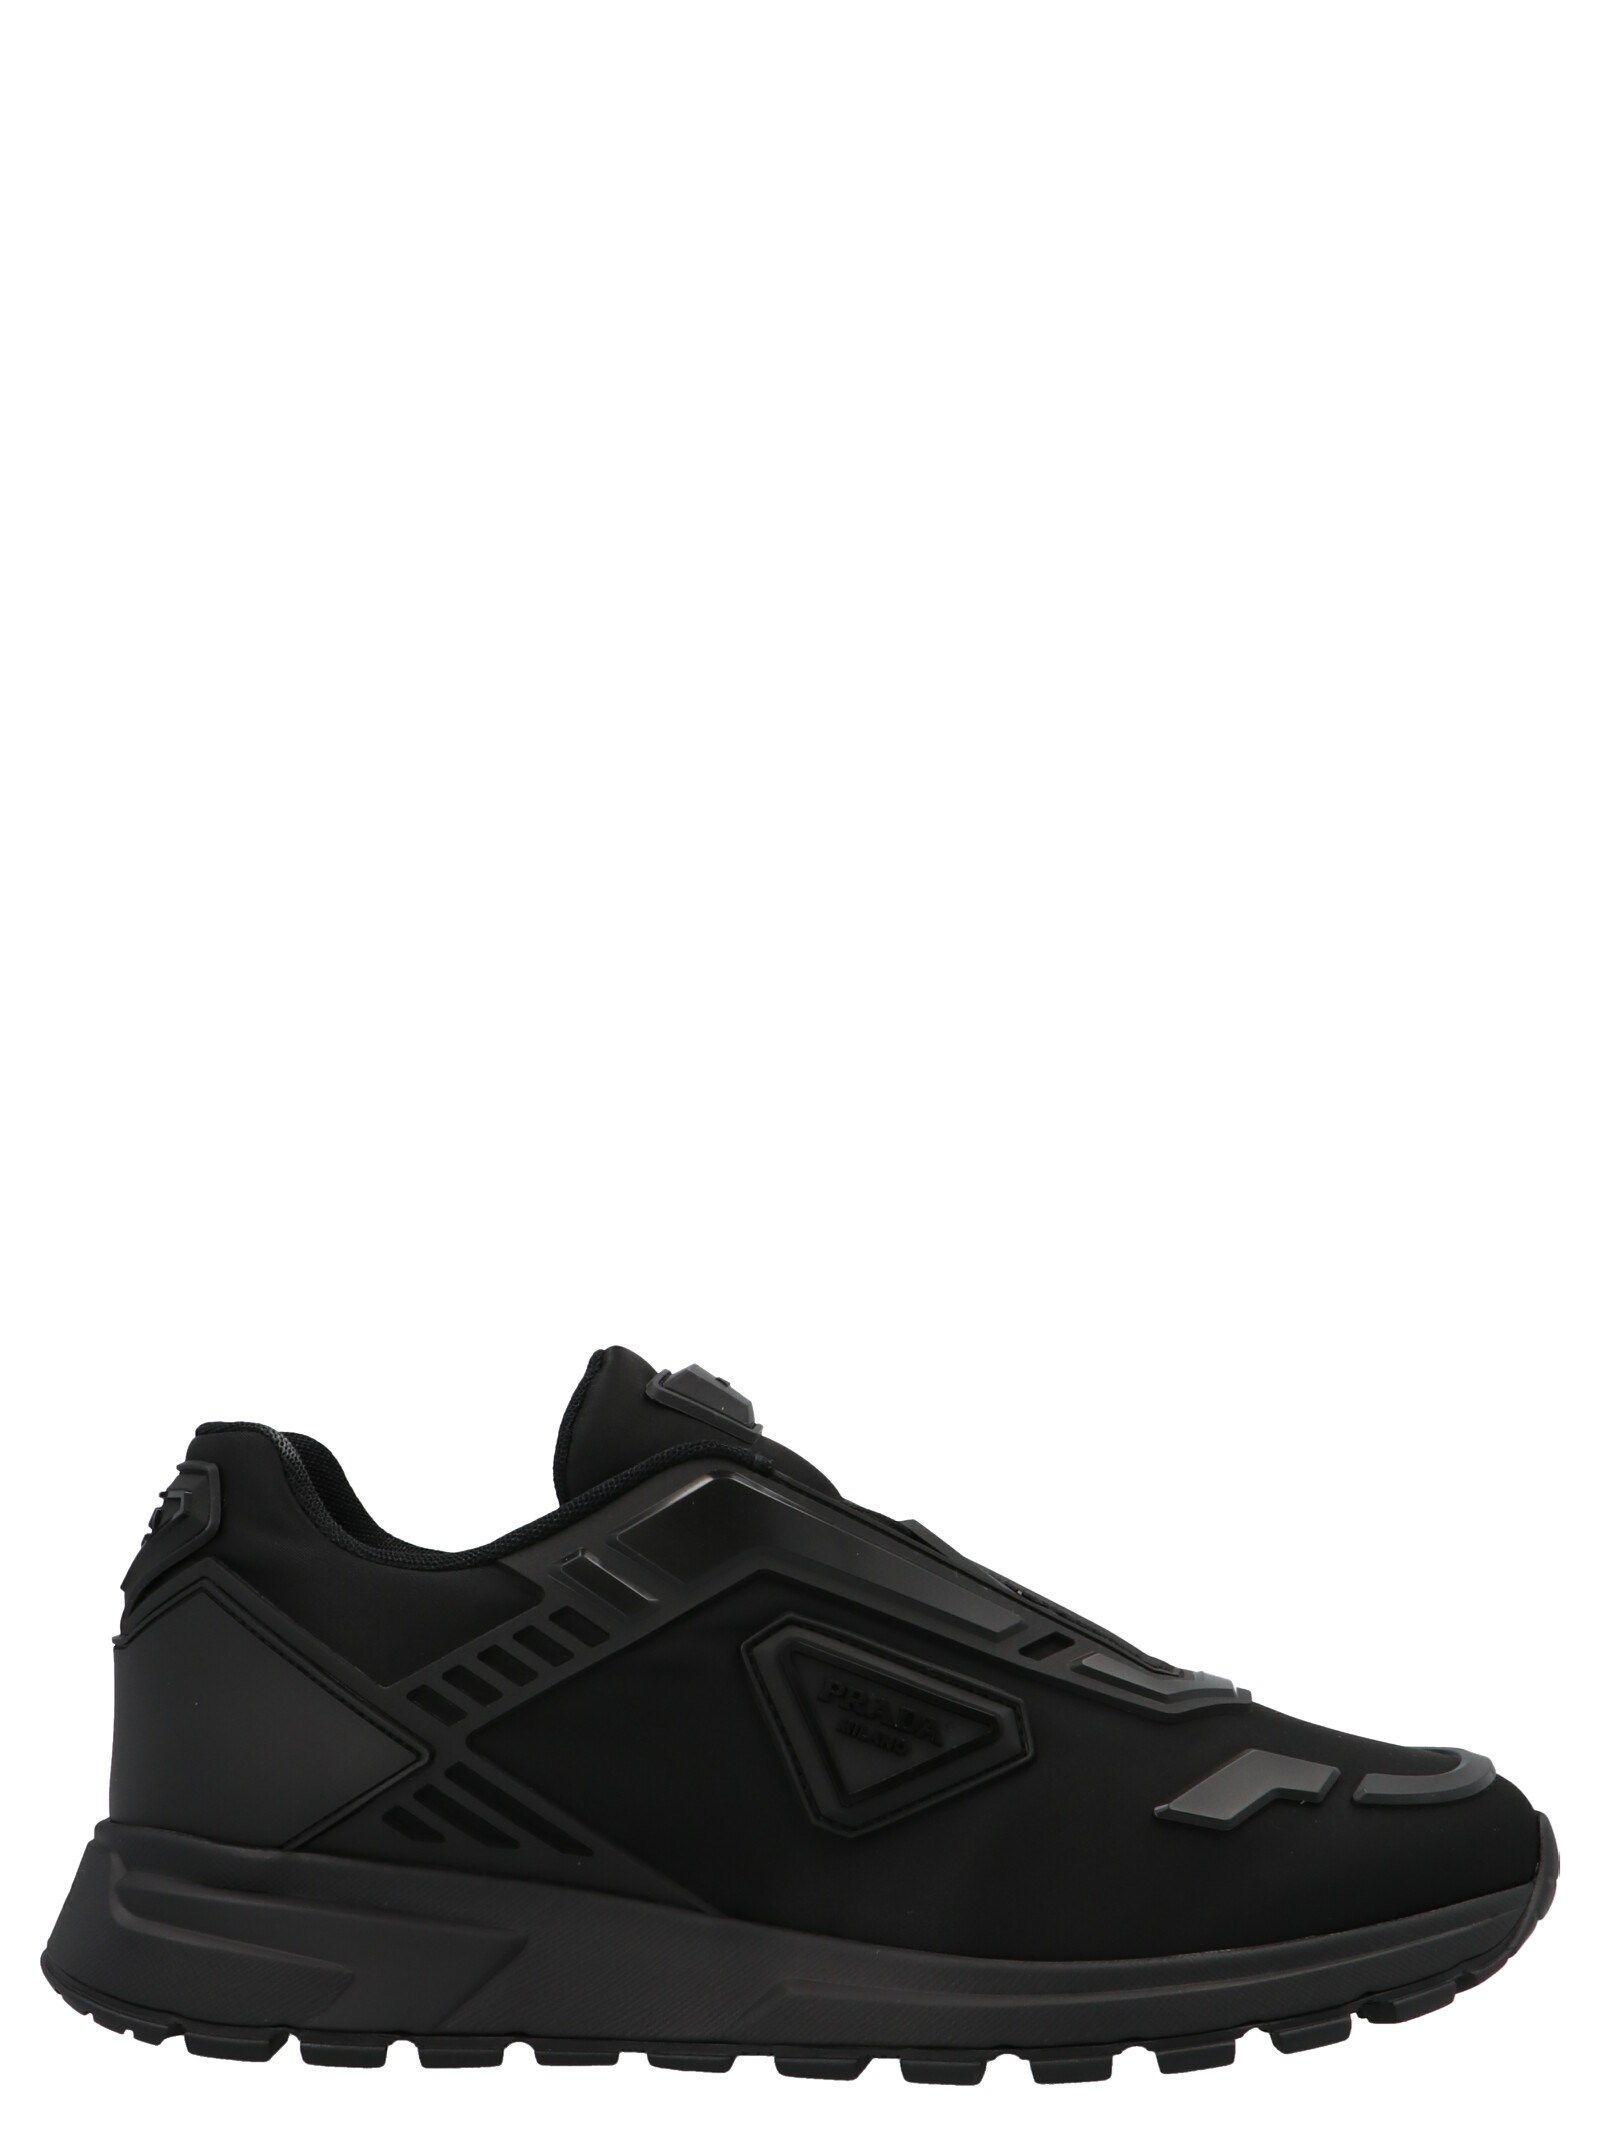 Prada PRADA MEN'S BLACK OTHER MATERIALS SNEAKERS